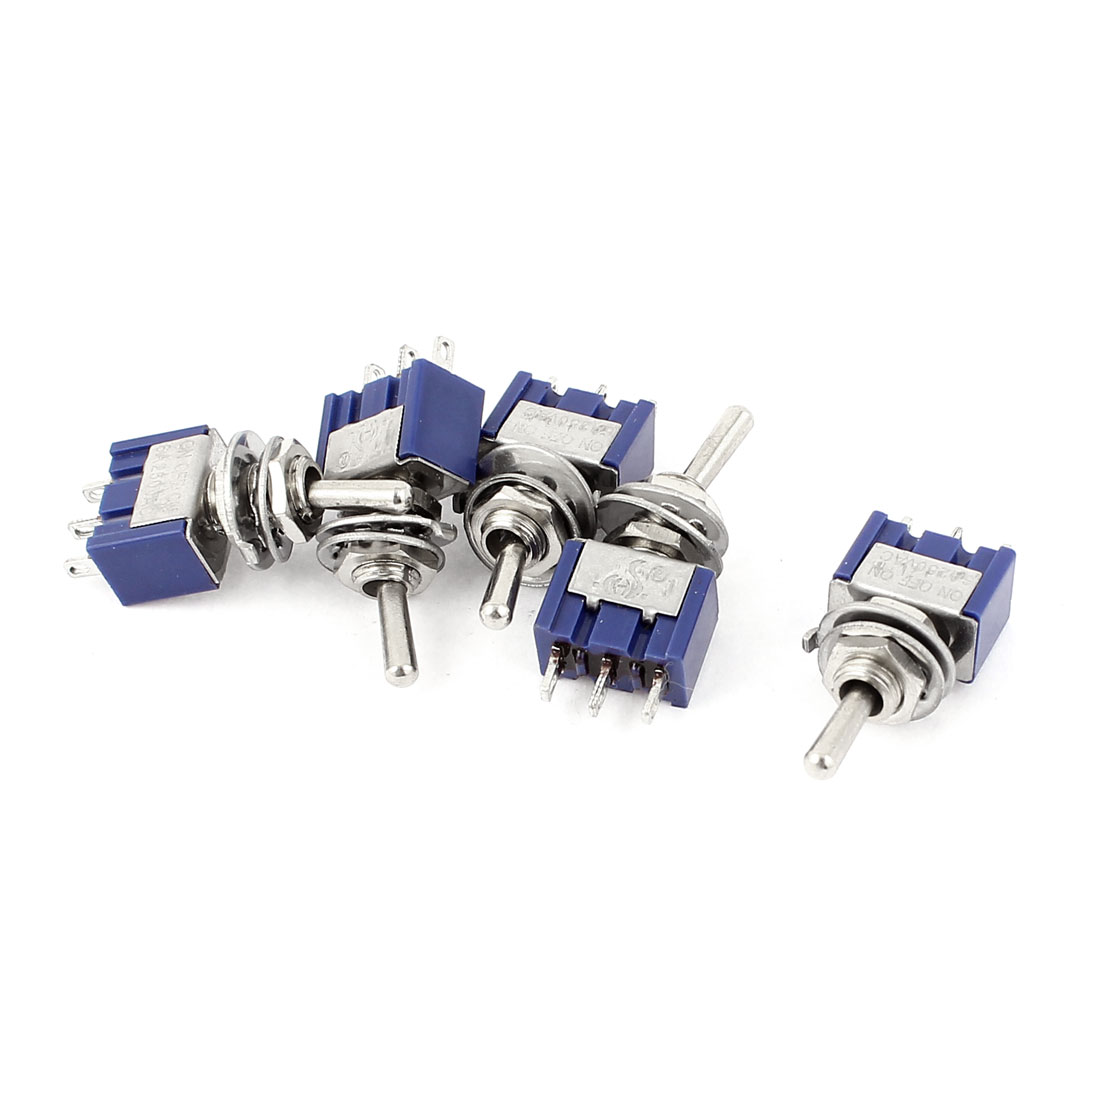 5 Pcs AC 250V 6A SPDT ON-OFF-ON 3 Pin Latching Miniature Toggle Switch